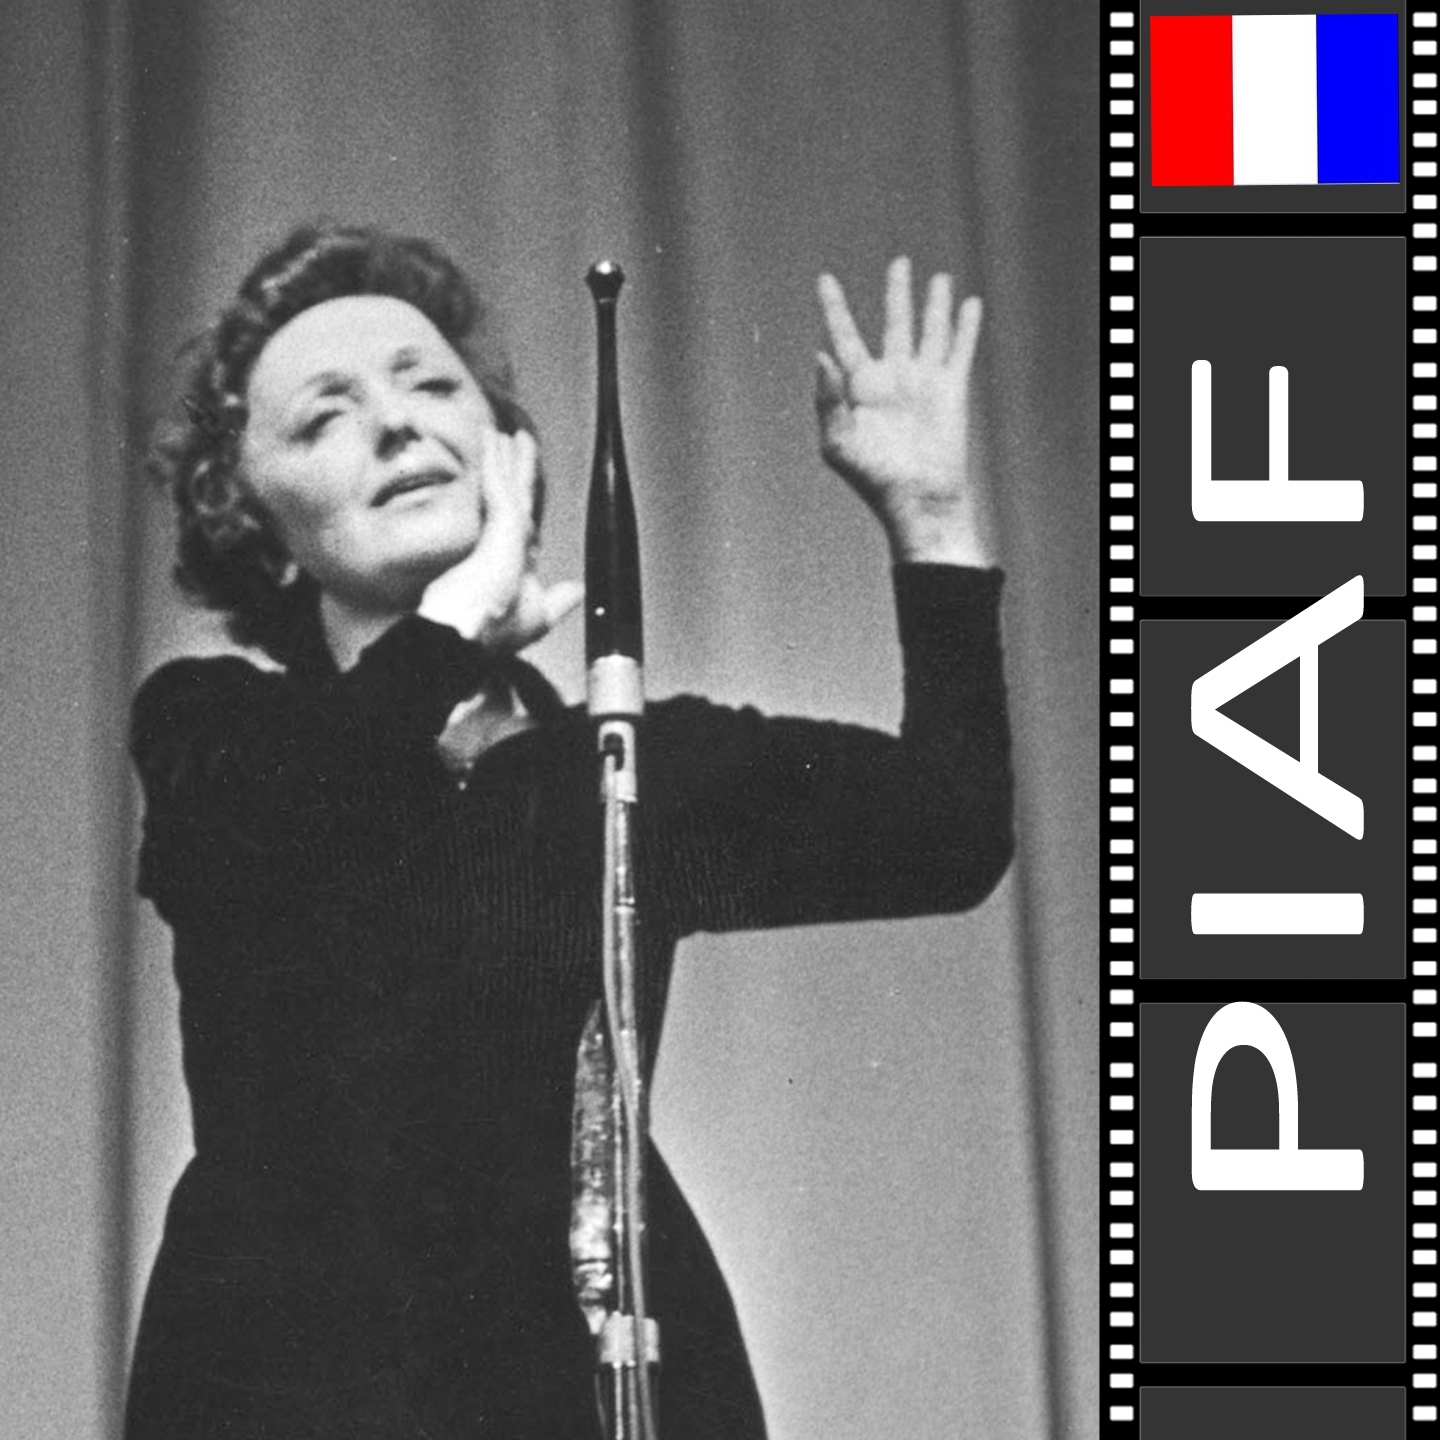 The Best of Edith Piaf - La vie en rose, Milord, And 10 Other Hits